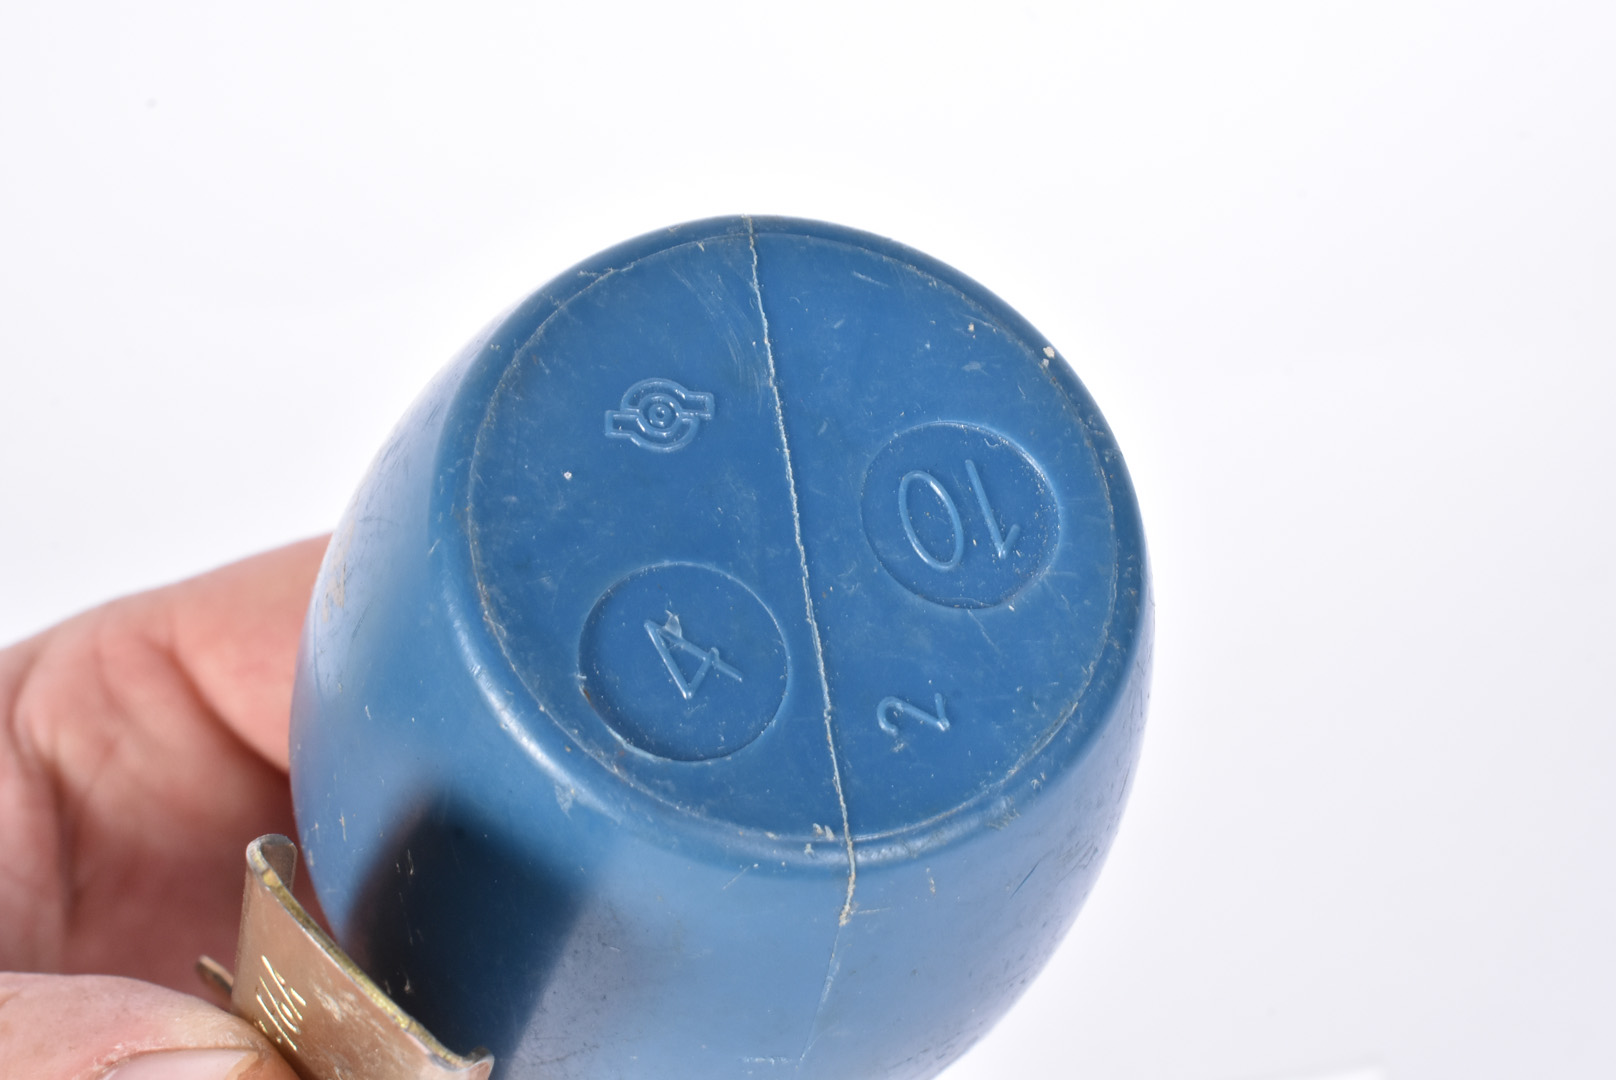 An inert French M51 practice grenade, having blue body with stamp, complete with spoon and pin, also - Image 4 of 4